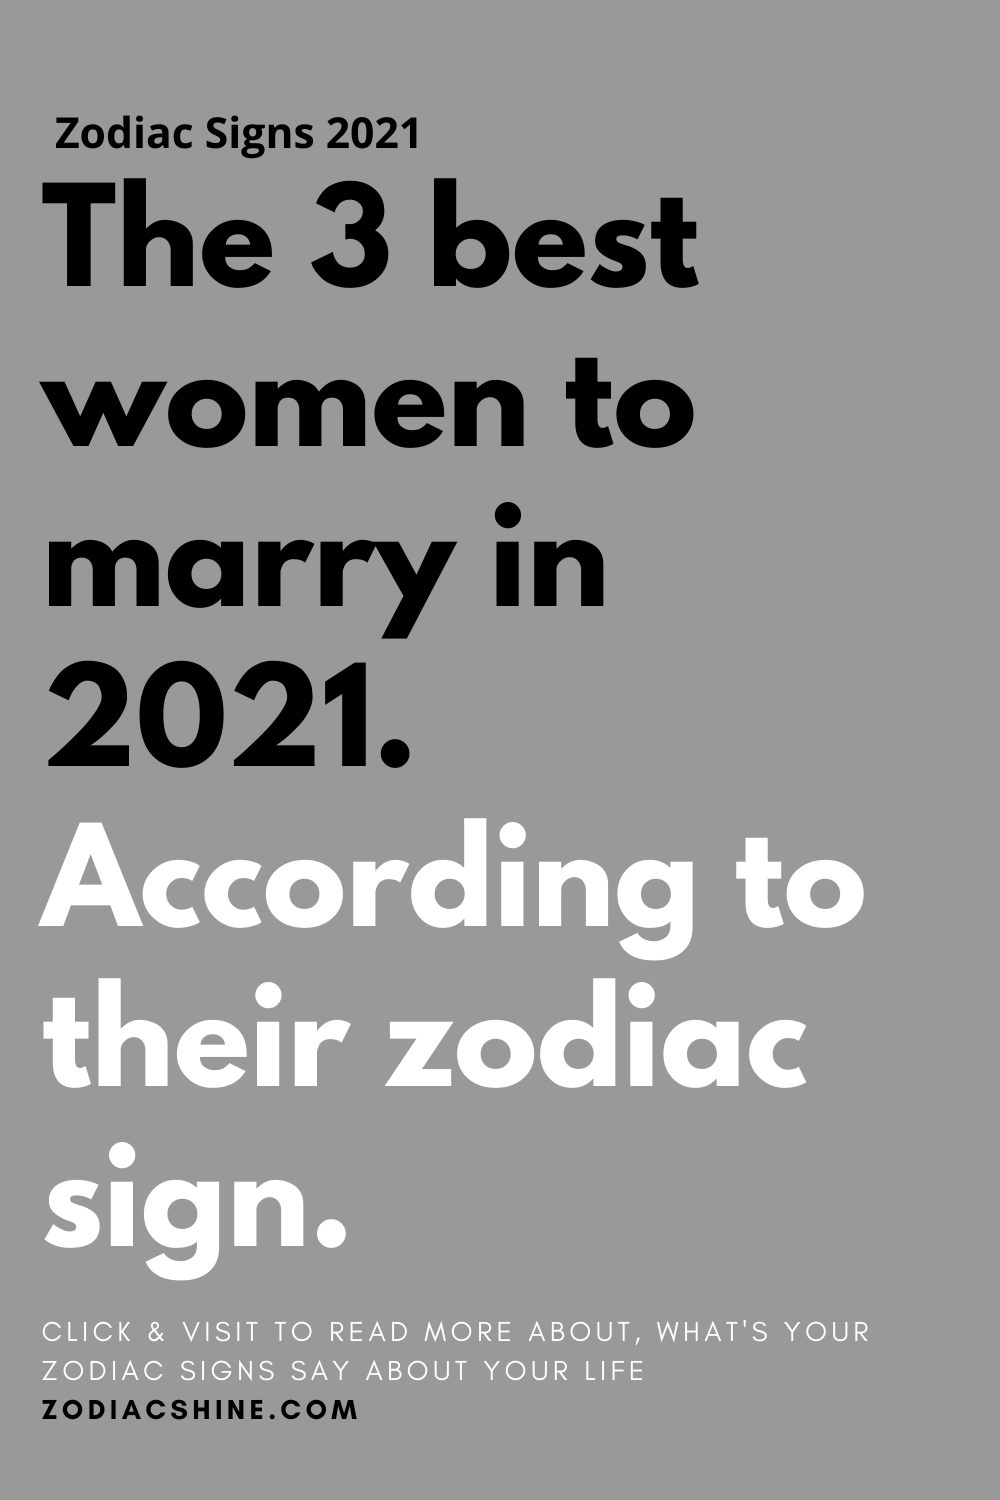 The 3 best women to marry in 2021. According to their zodiac sign.